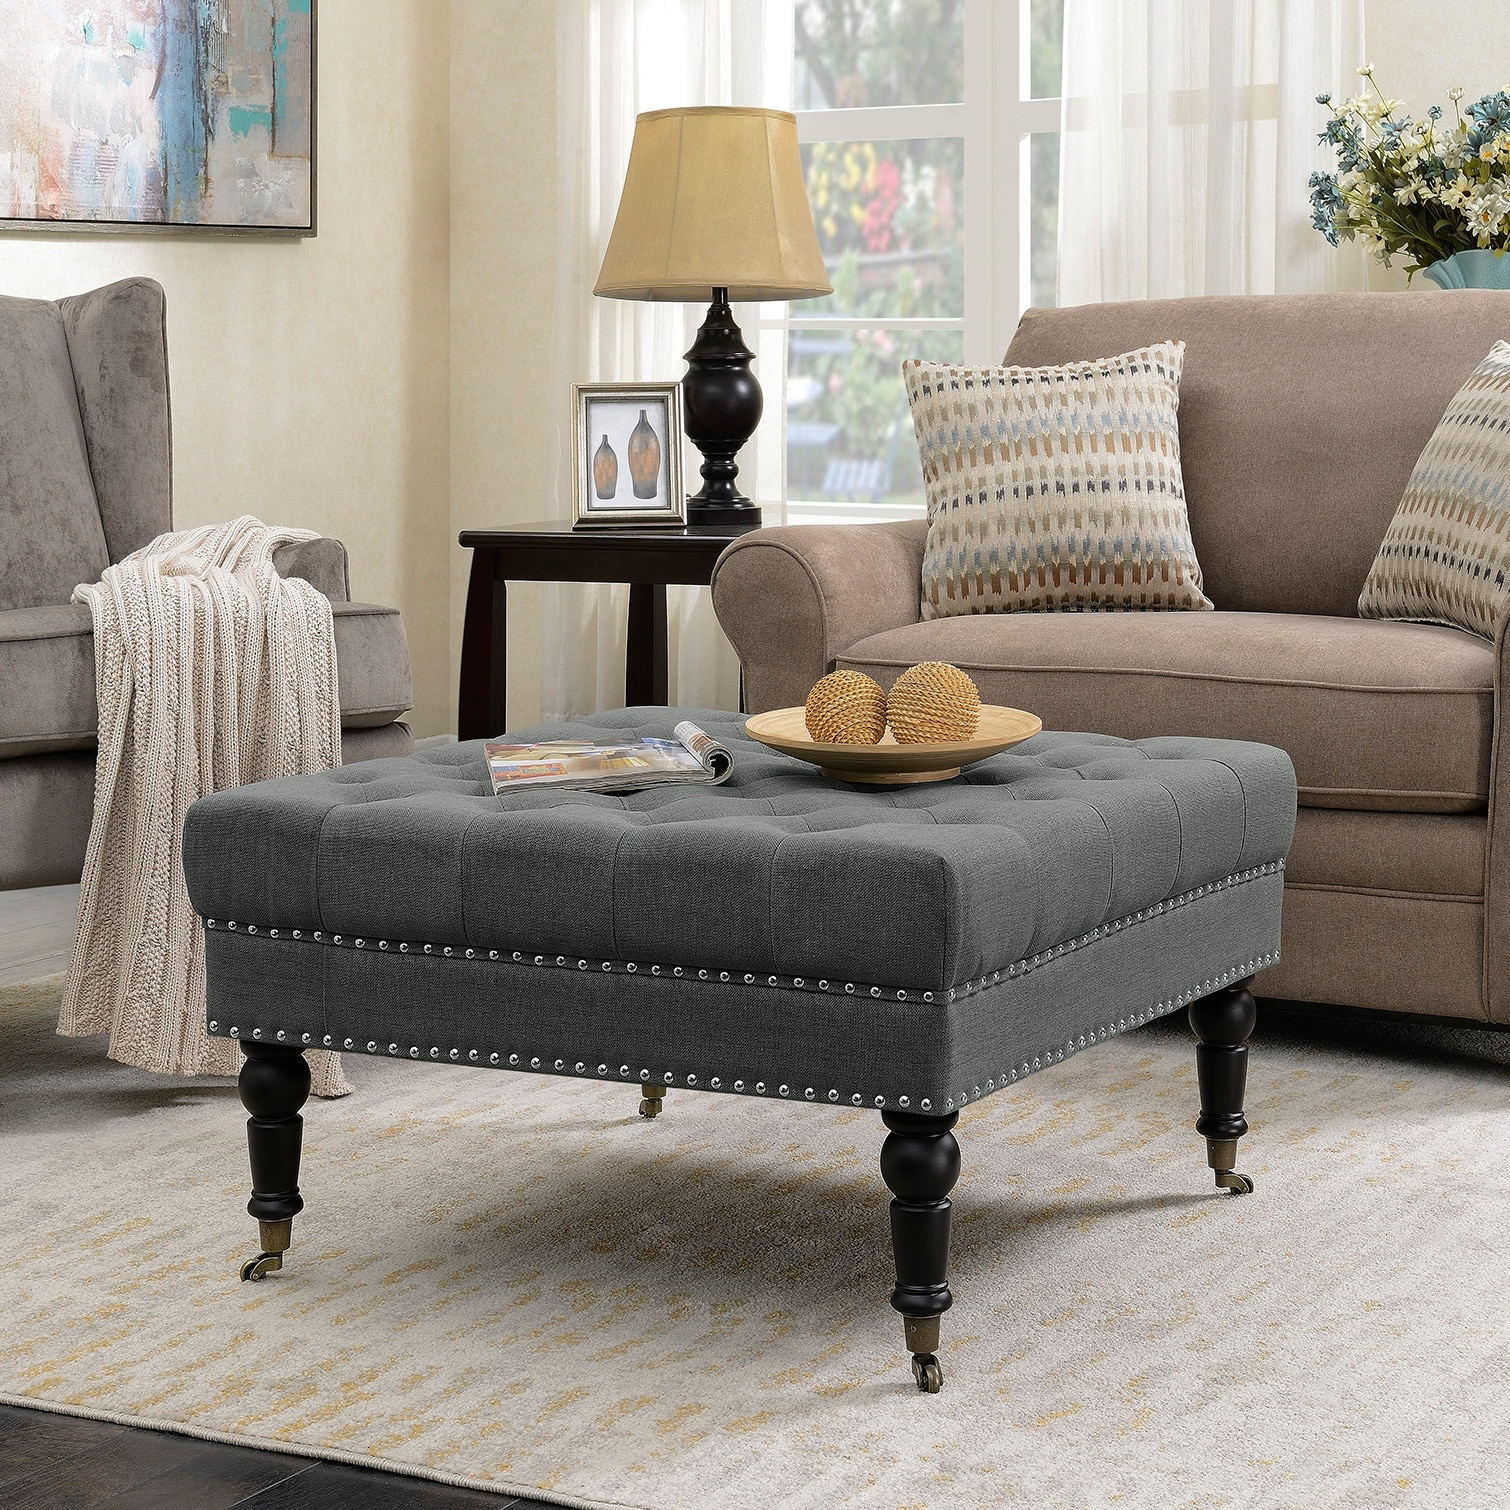 Rolling Ottoman Coffee Table.Belleze Button Tufted Linen Fabric Ottoman Bench Foot Stool With Rolling Wheels Large Nailhead Trim Charcoal